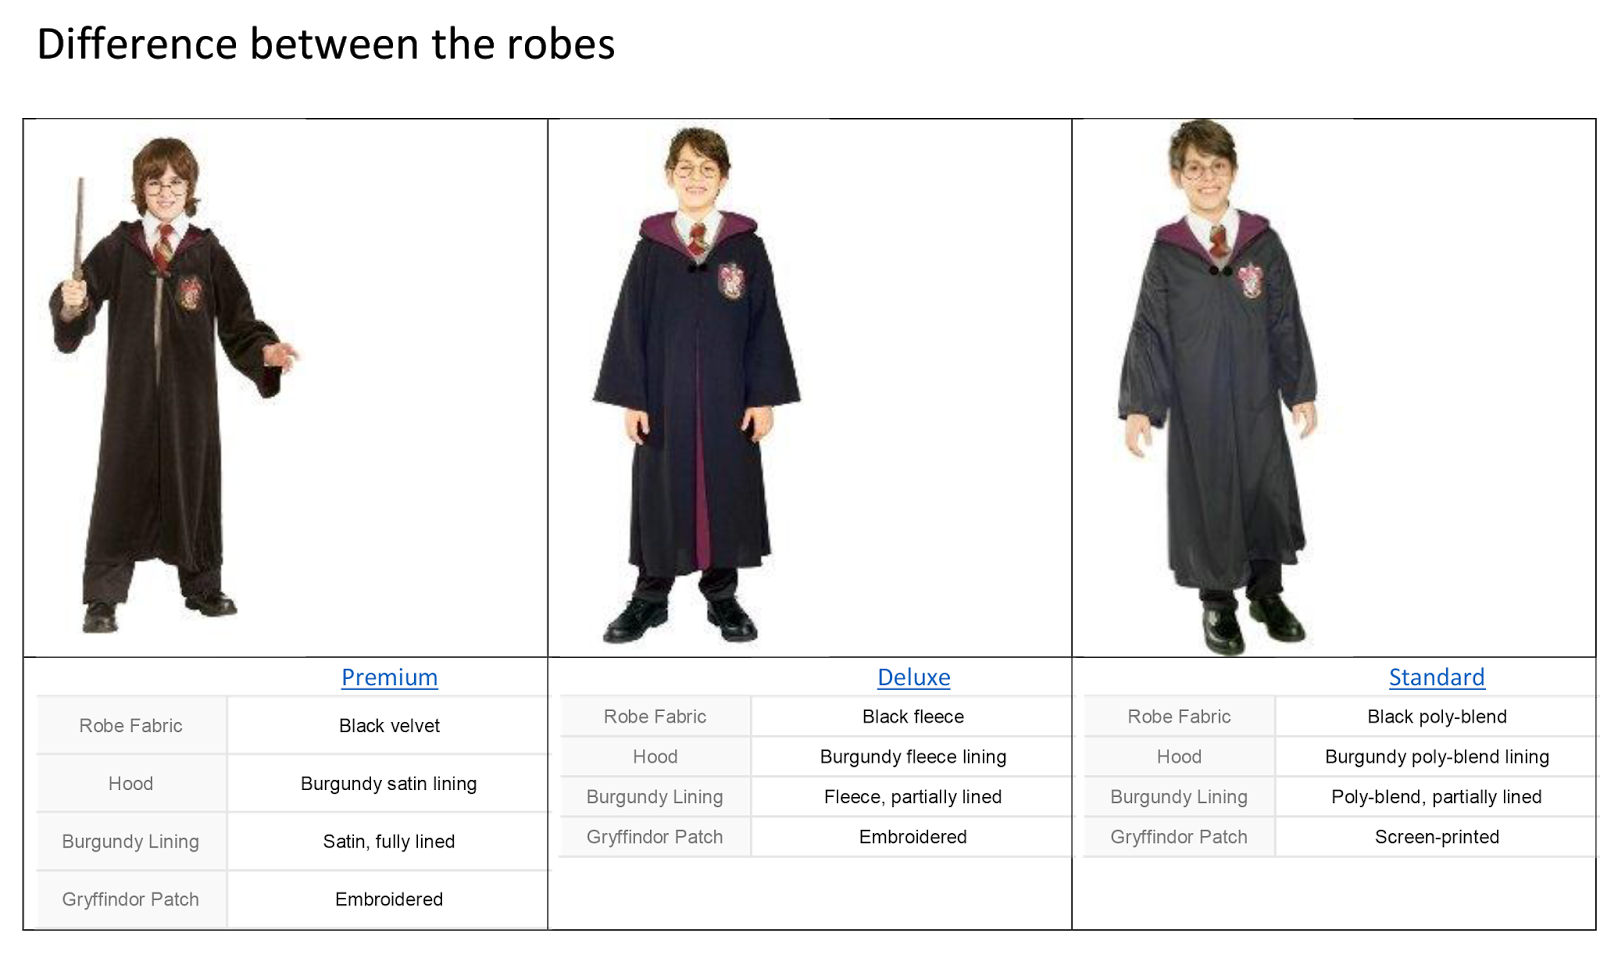 Miga s blog ever. Robes drawing ravenclaw vector transparent stock